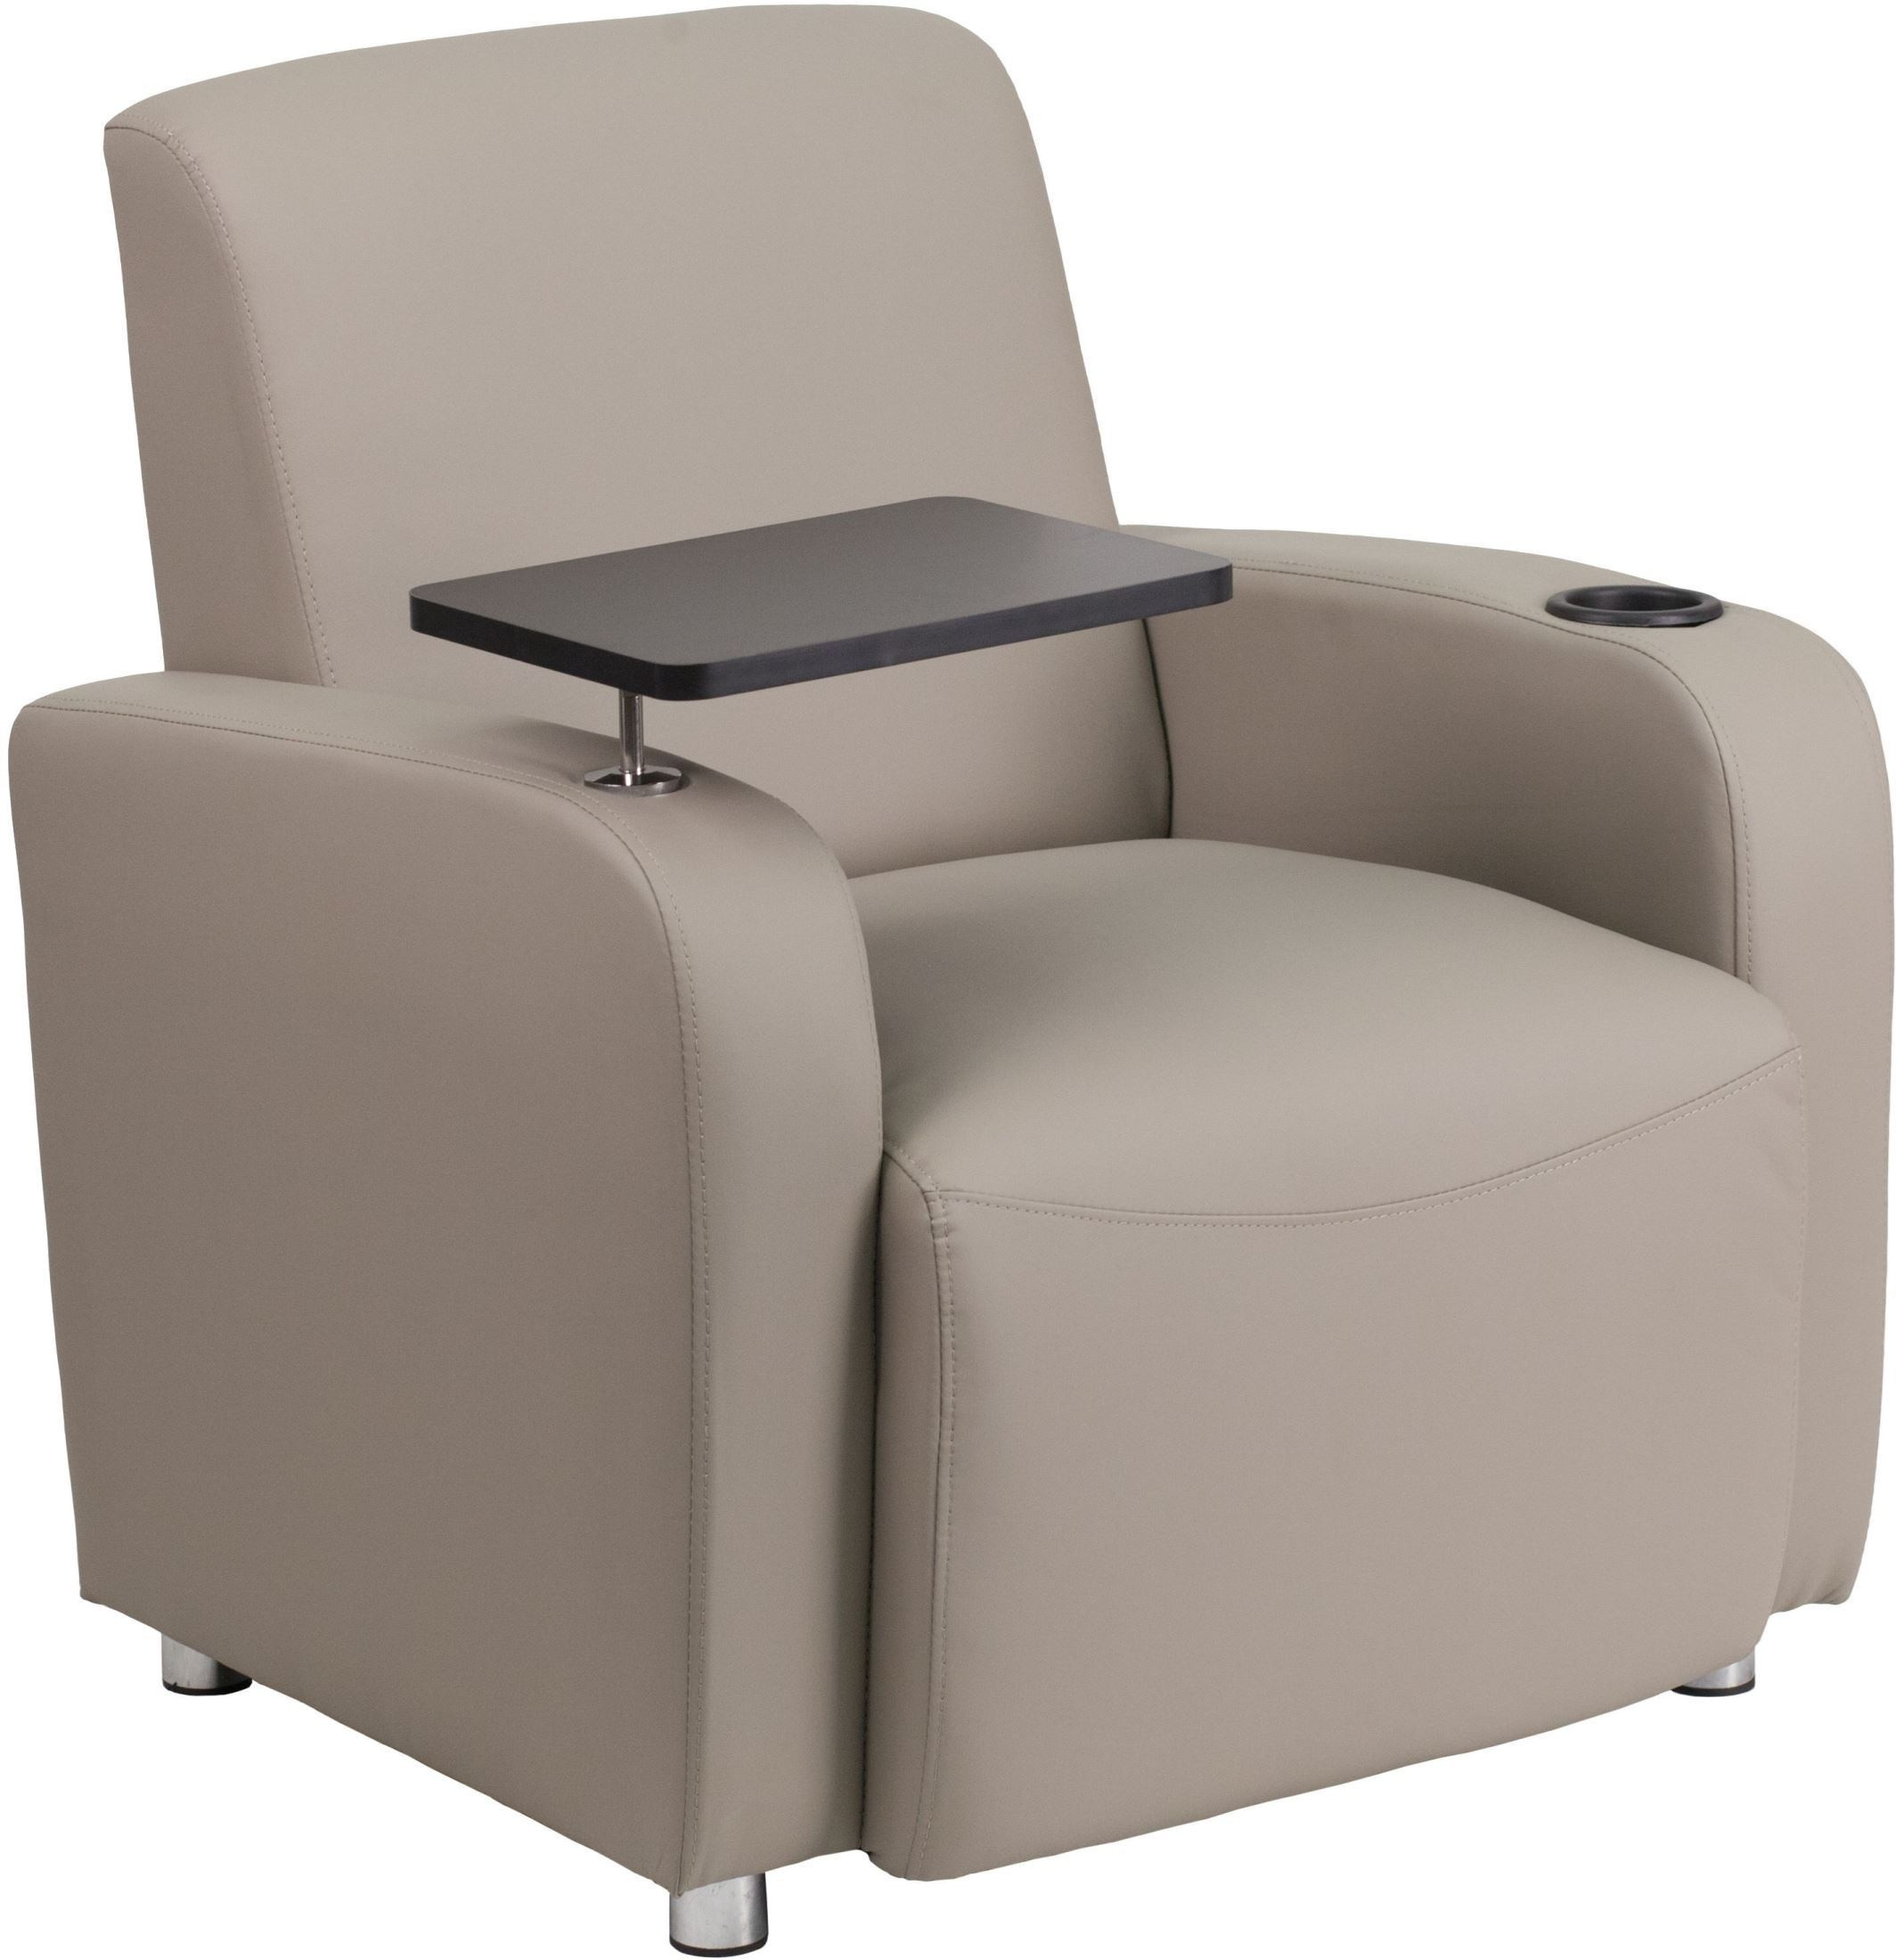 grey arm chair gray covers leather guest with cup holder from renegade